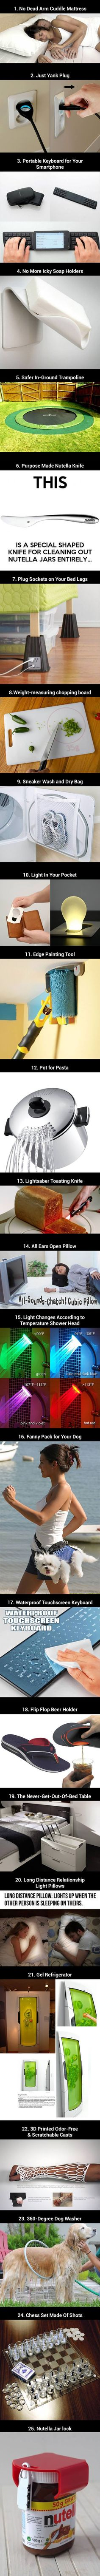 25 Just Really Cool Inventions